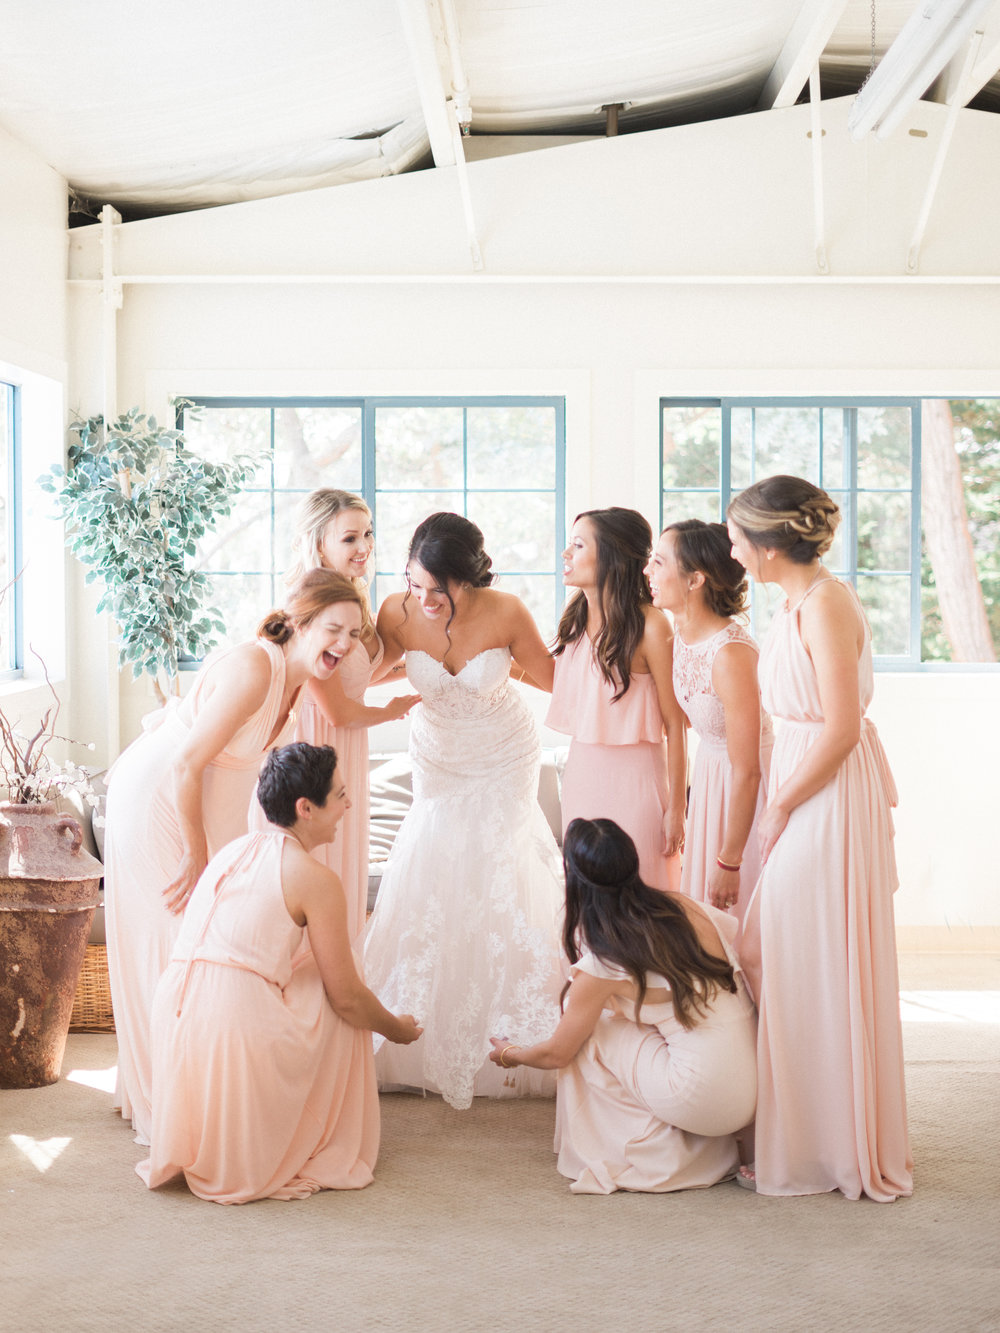 trynhphoto_socal_sf_halfmoon_bay_wedding_photographer_JA-67.jpg